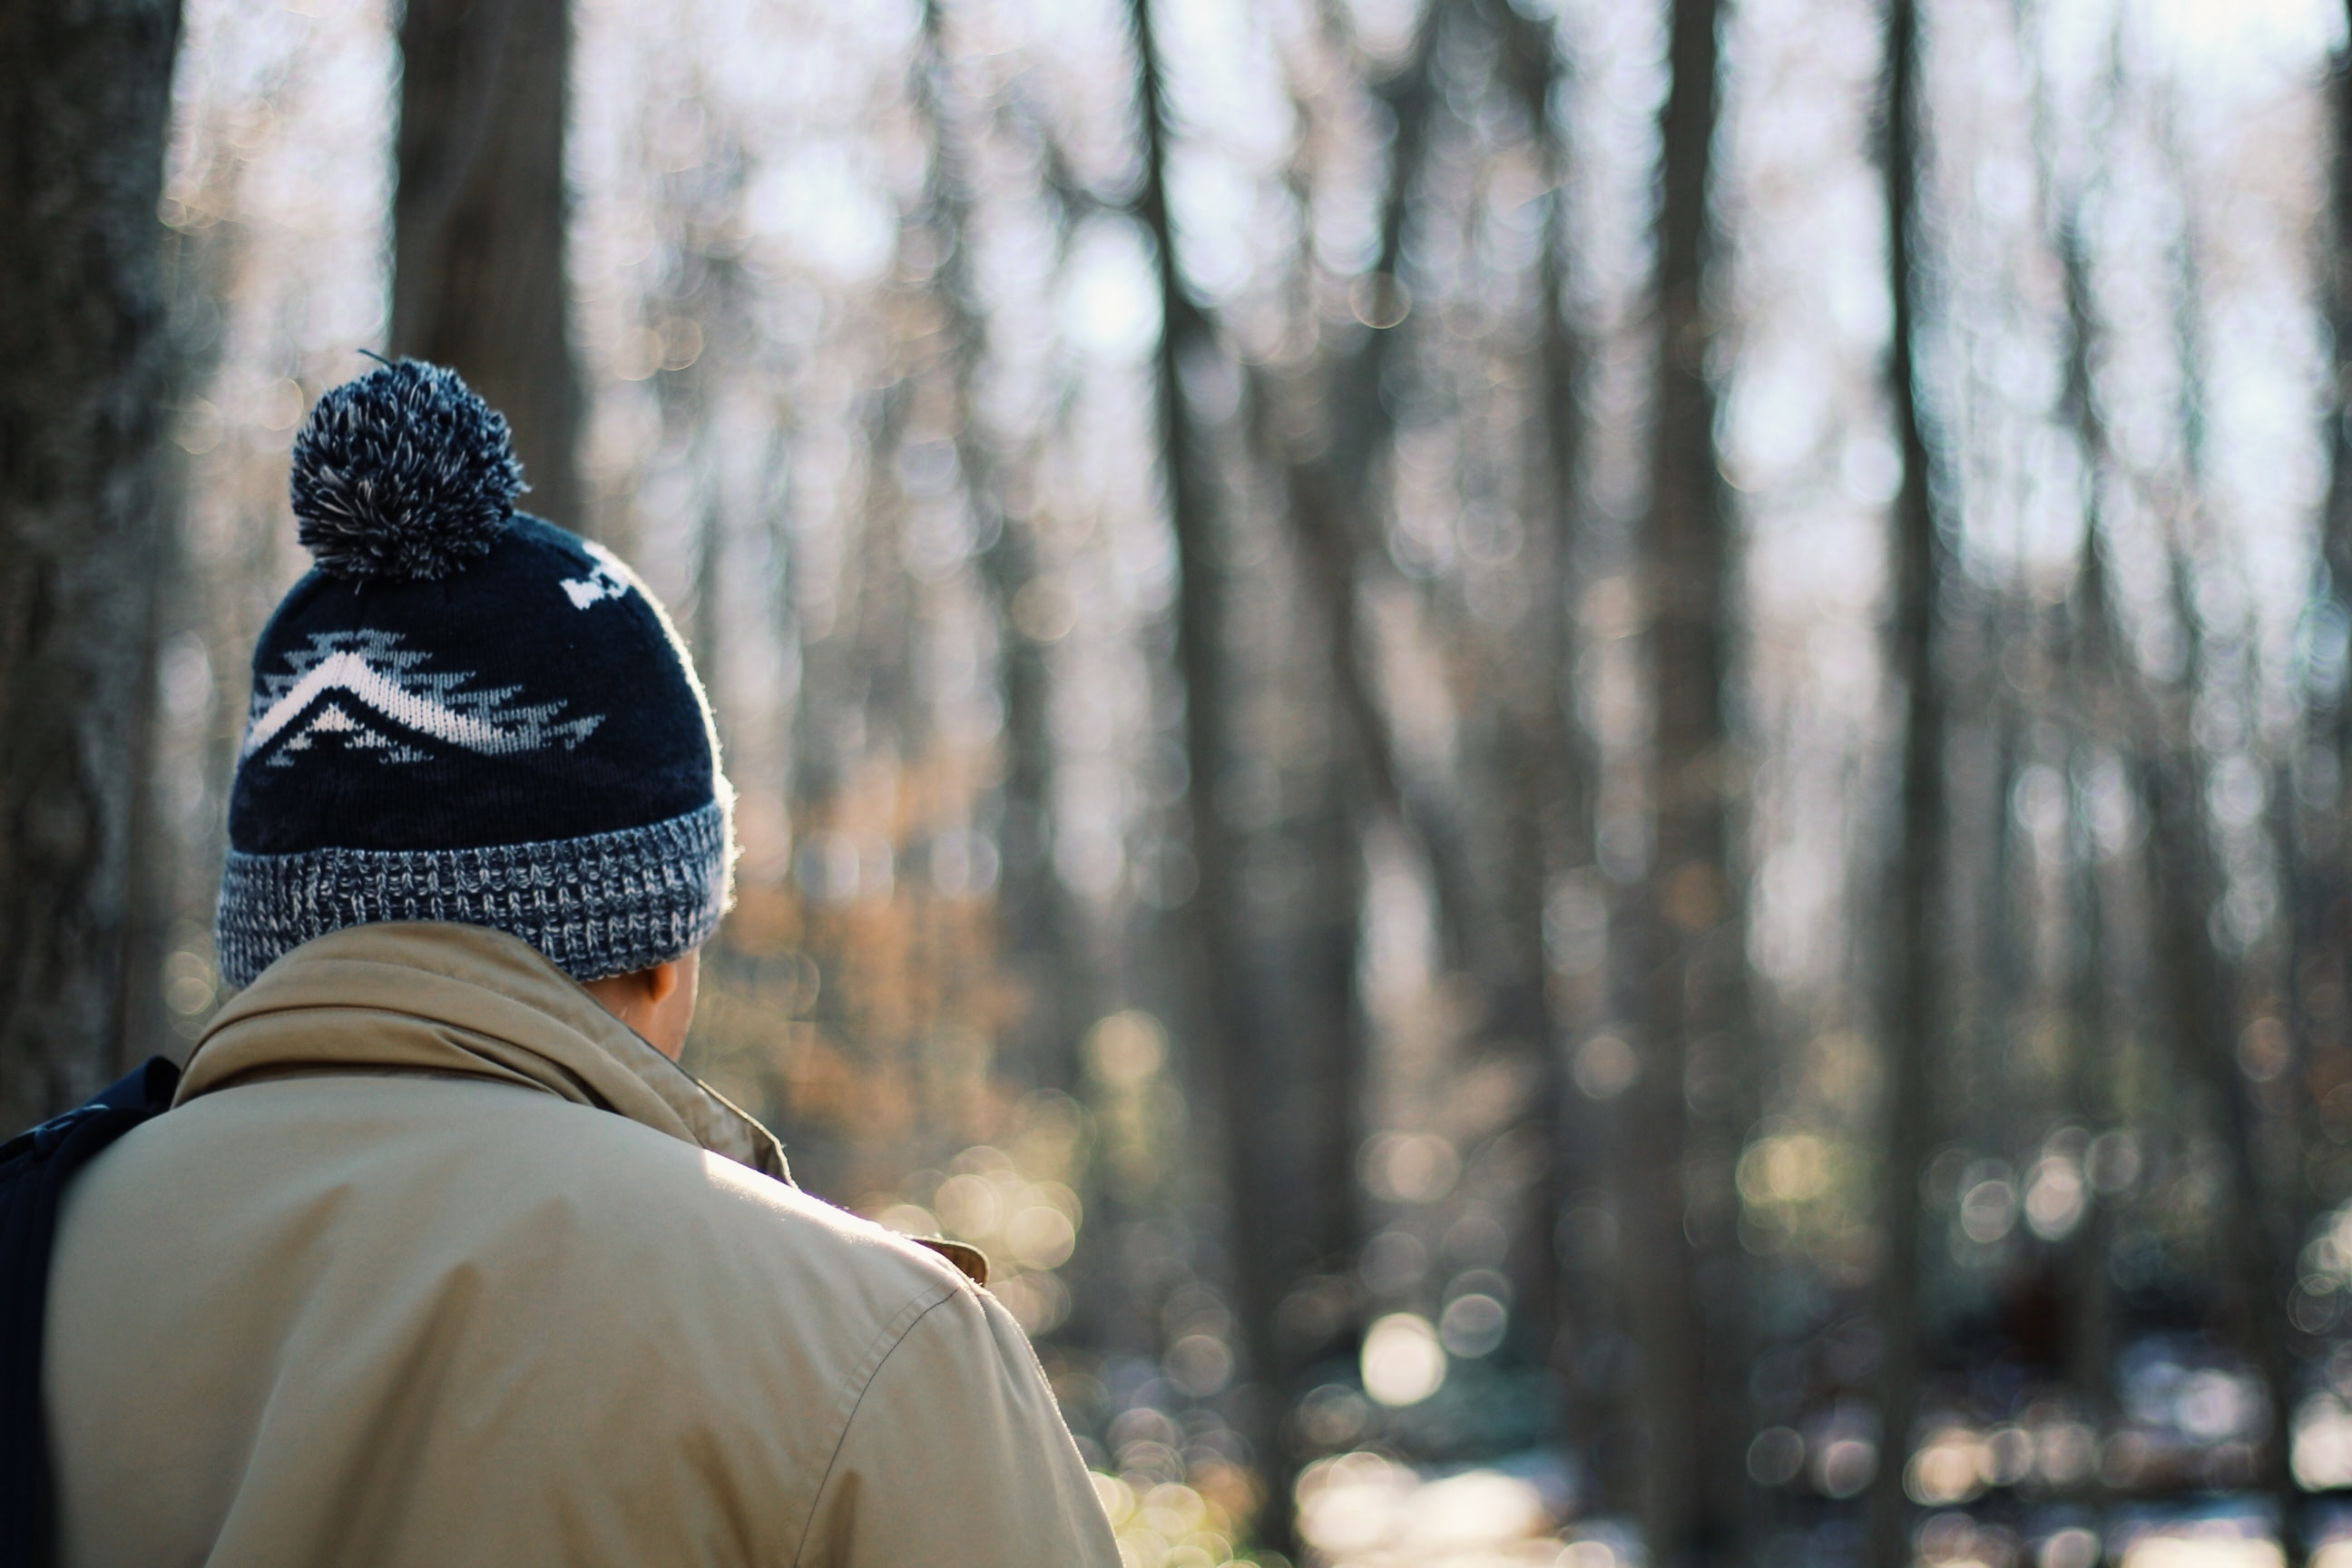 person facing trees